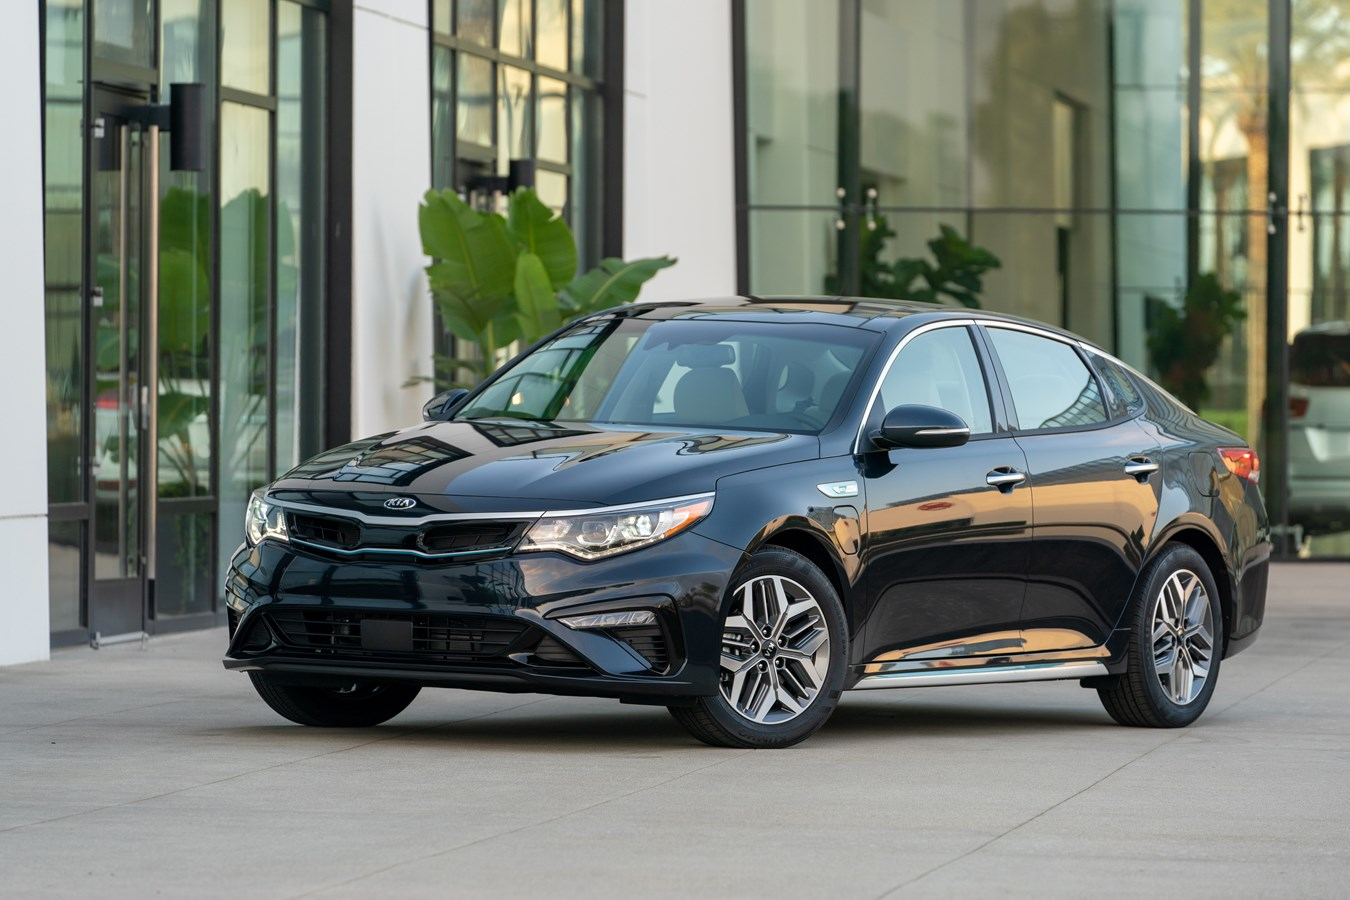 2020 Optima Plug-in Hybrid B-Roll